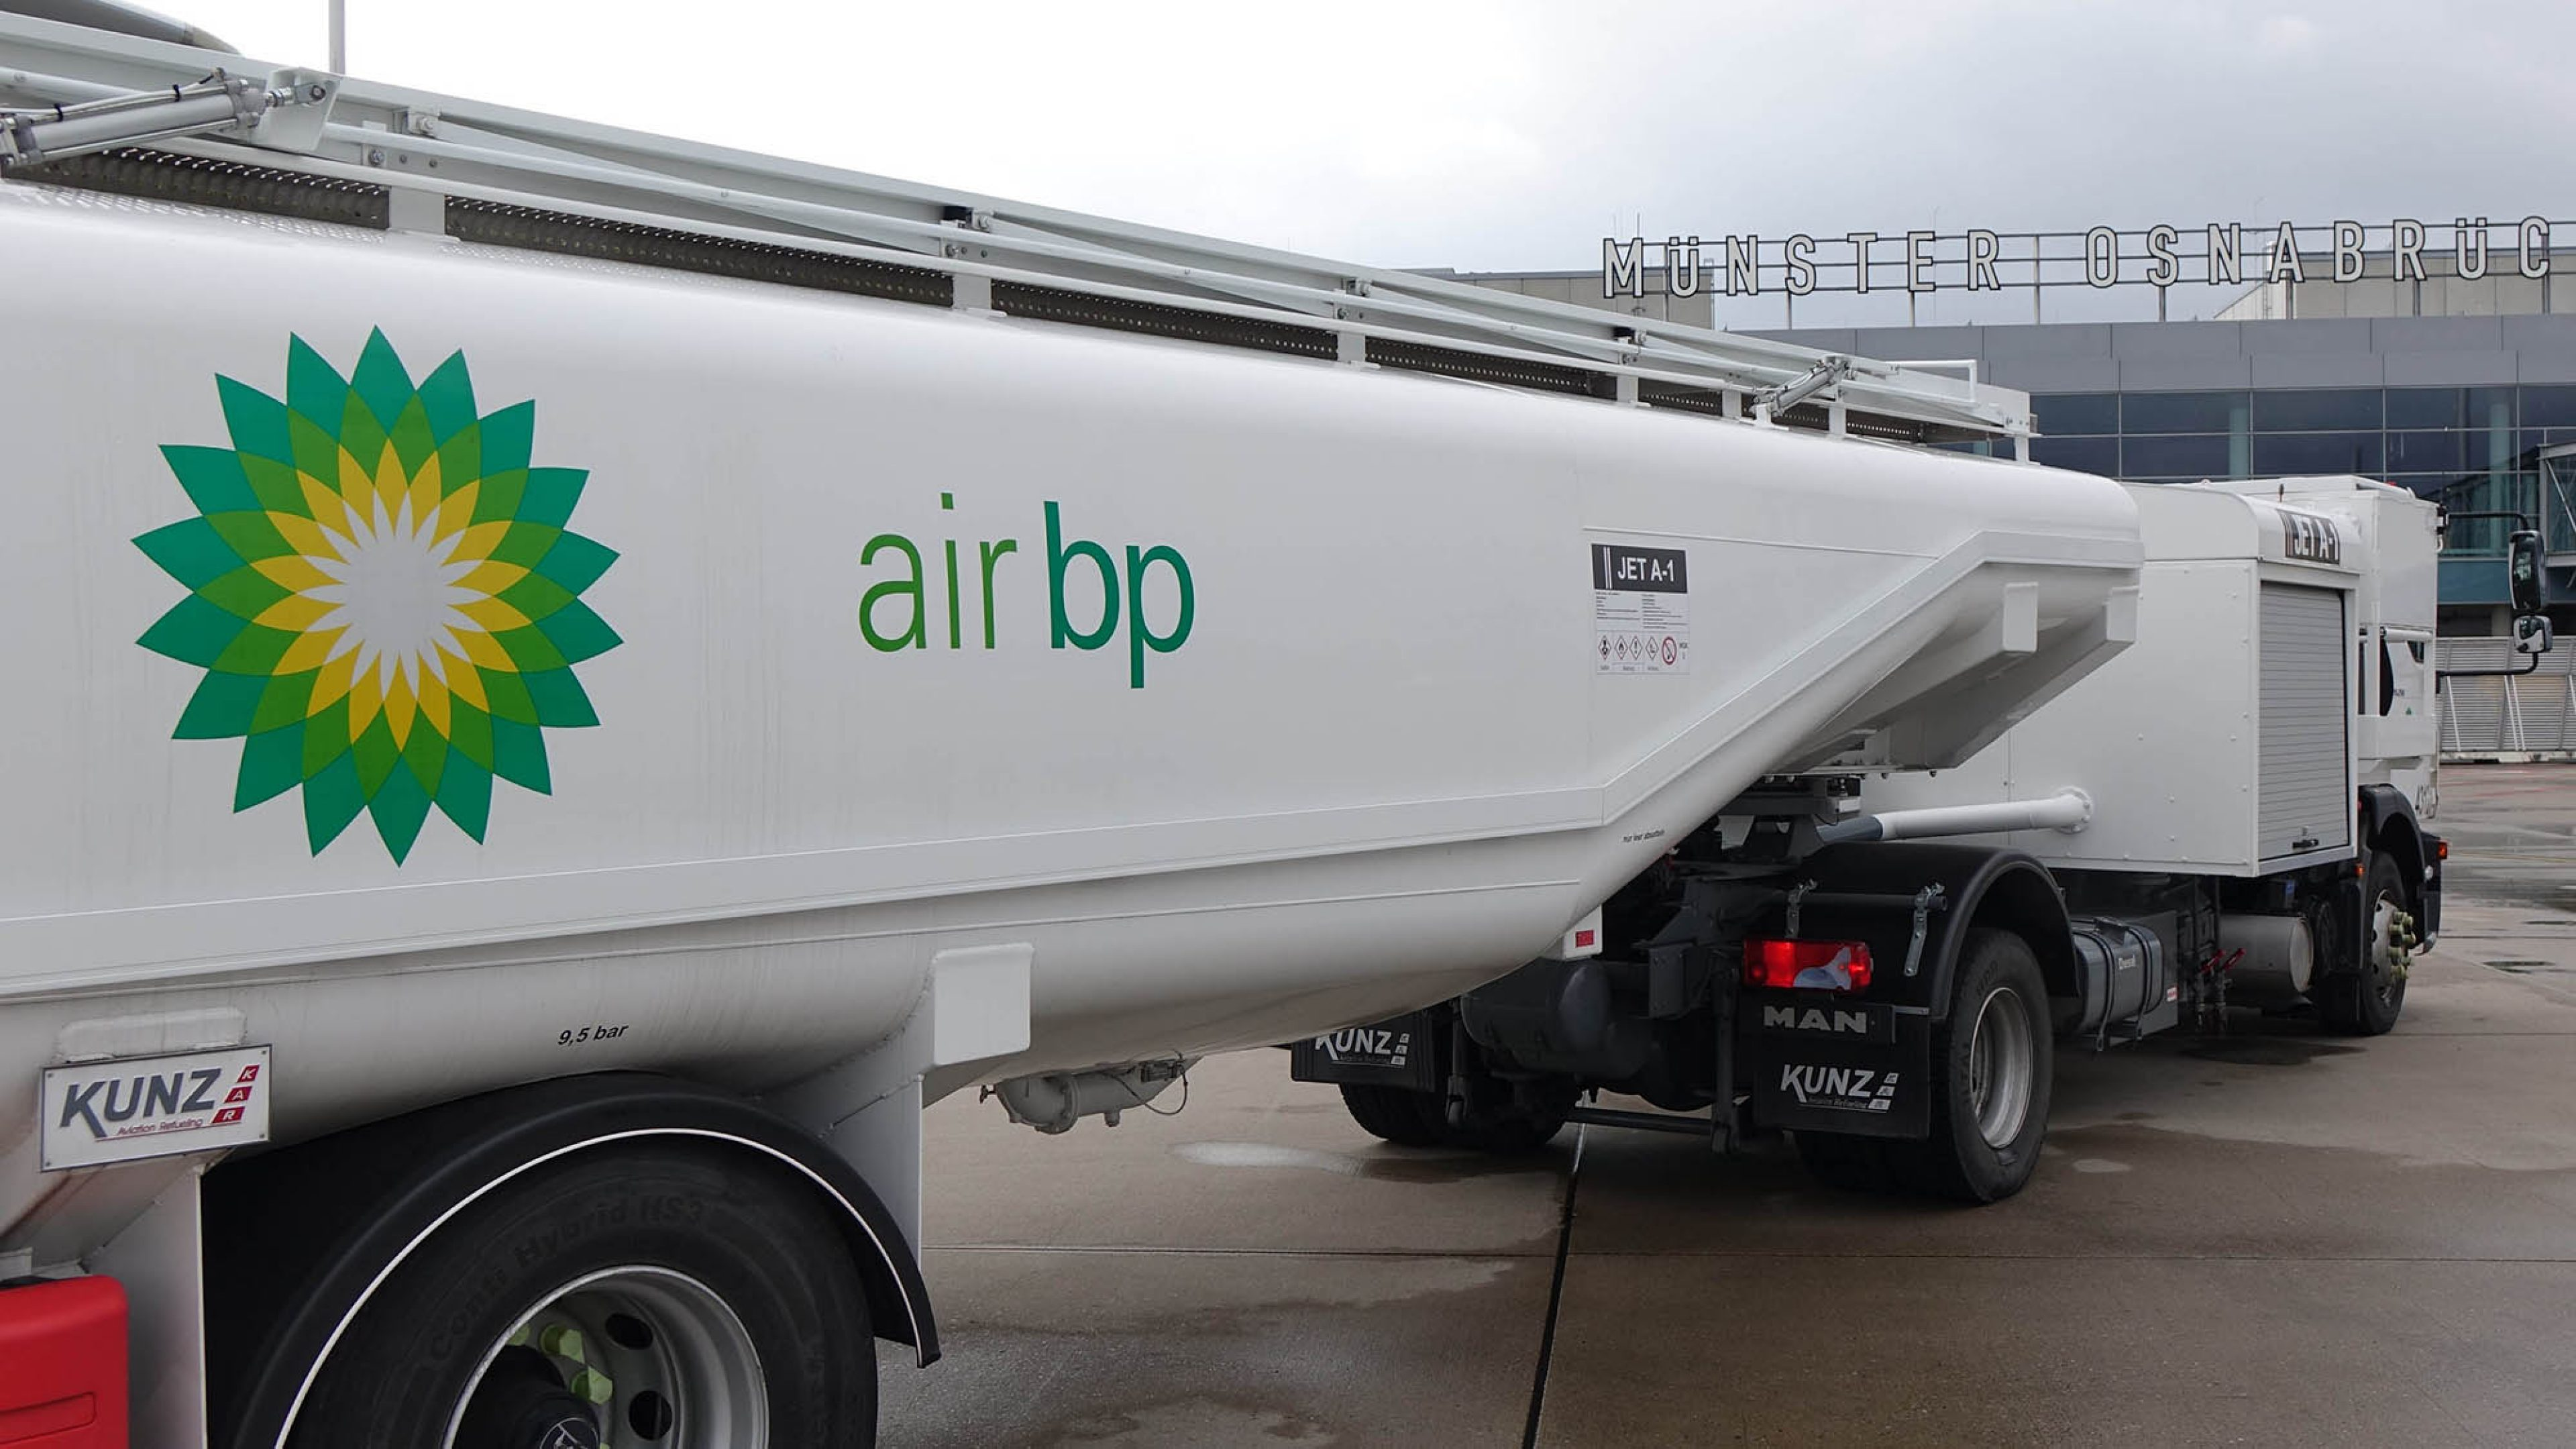 Air BP fuels its first customer at Muenster-Osnabrück International airport, Germany